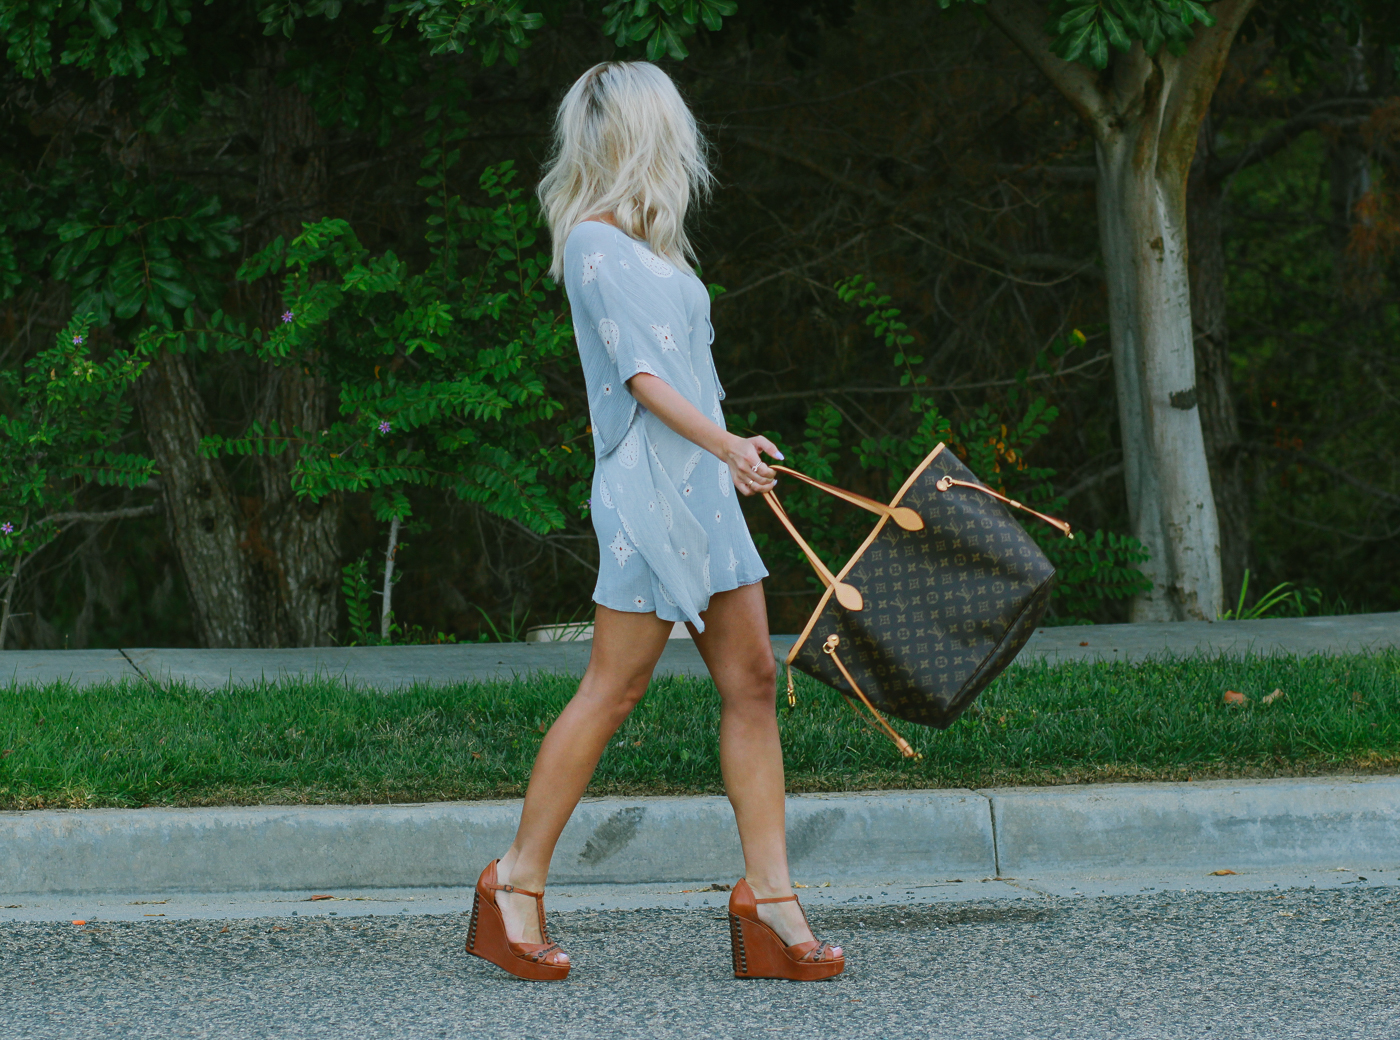 Blondie in the City | Pastel Blue Tunic | Vince Camuto Wedges | Louis Vuitton Neverfull Bag